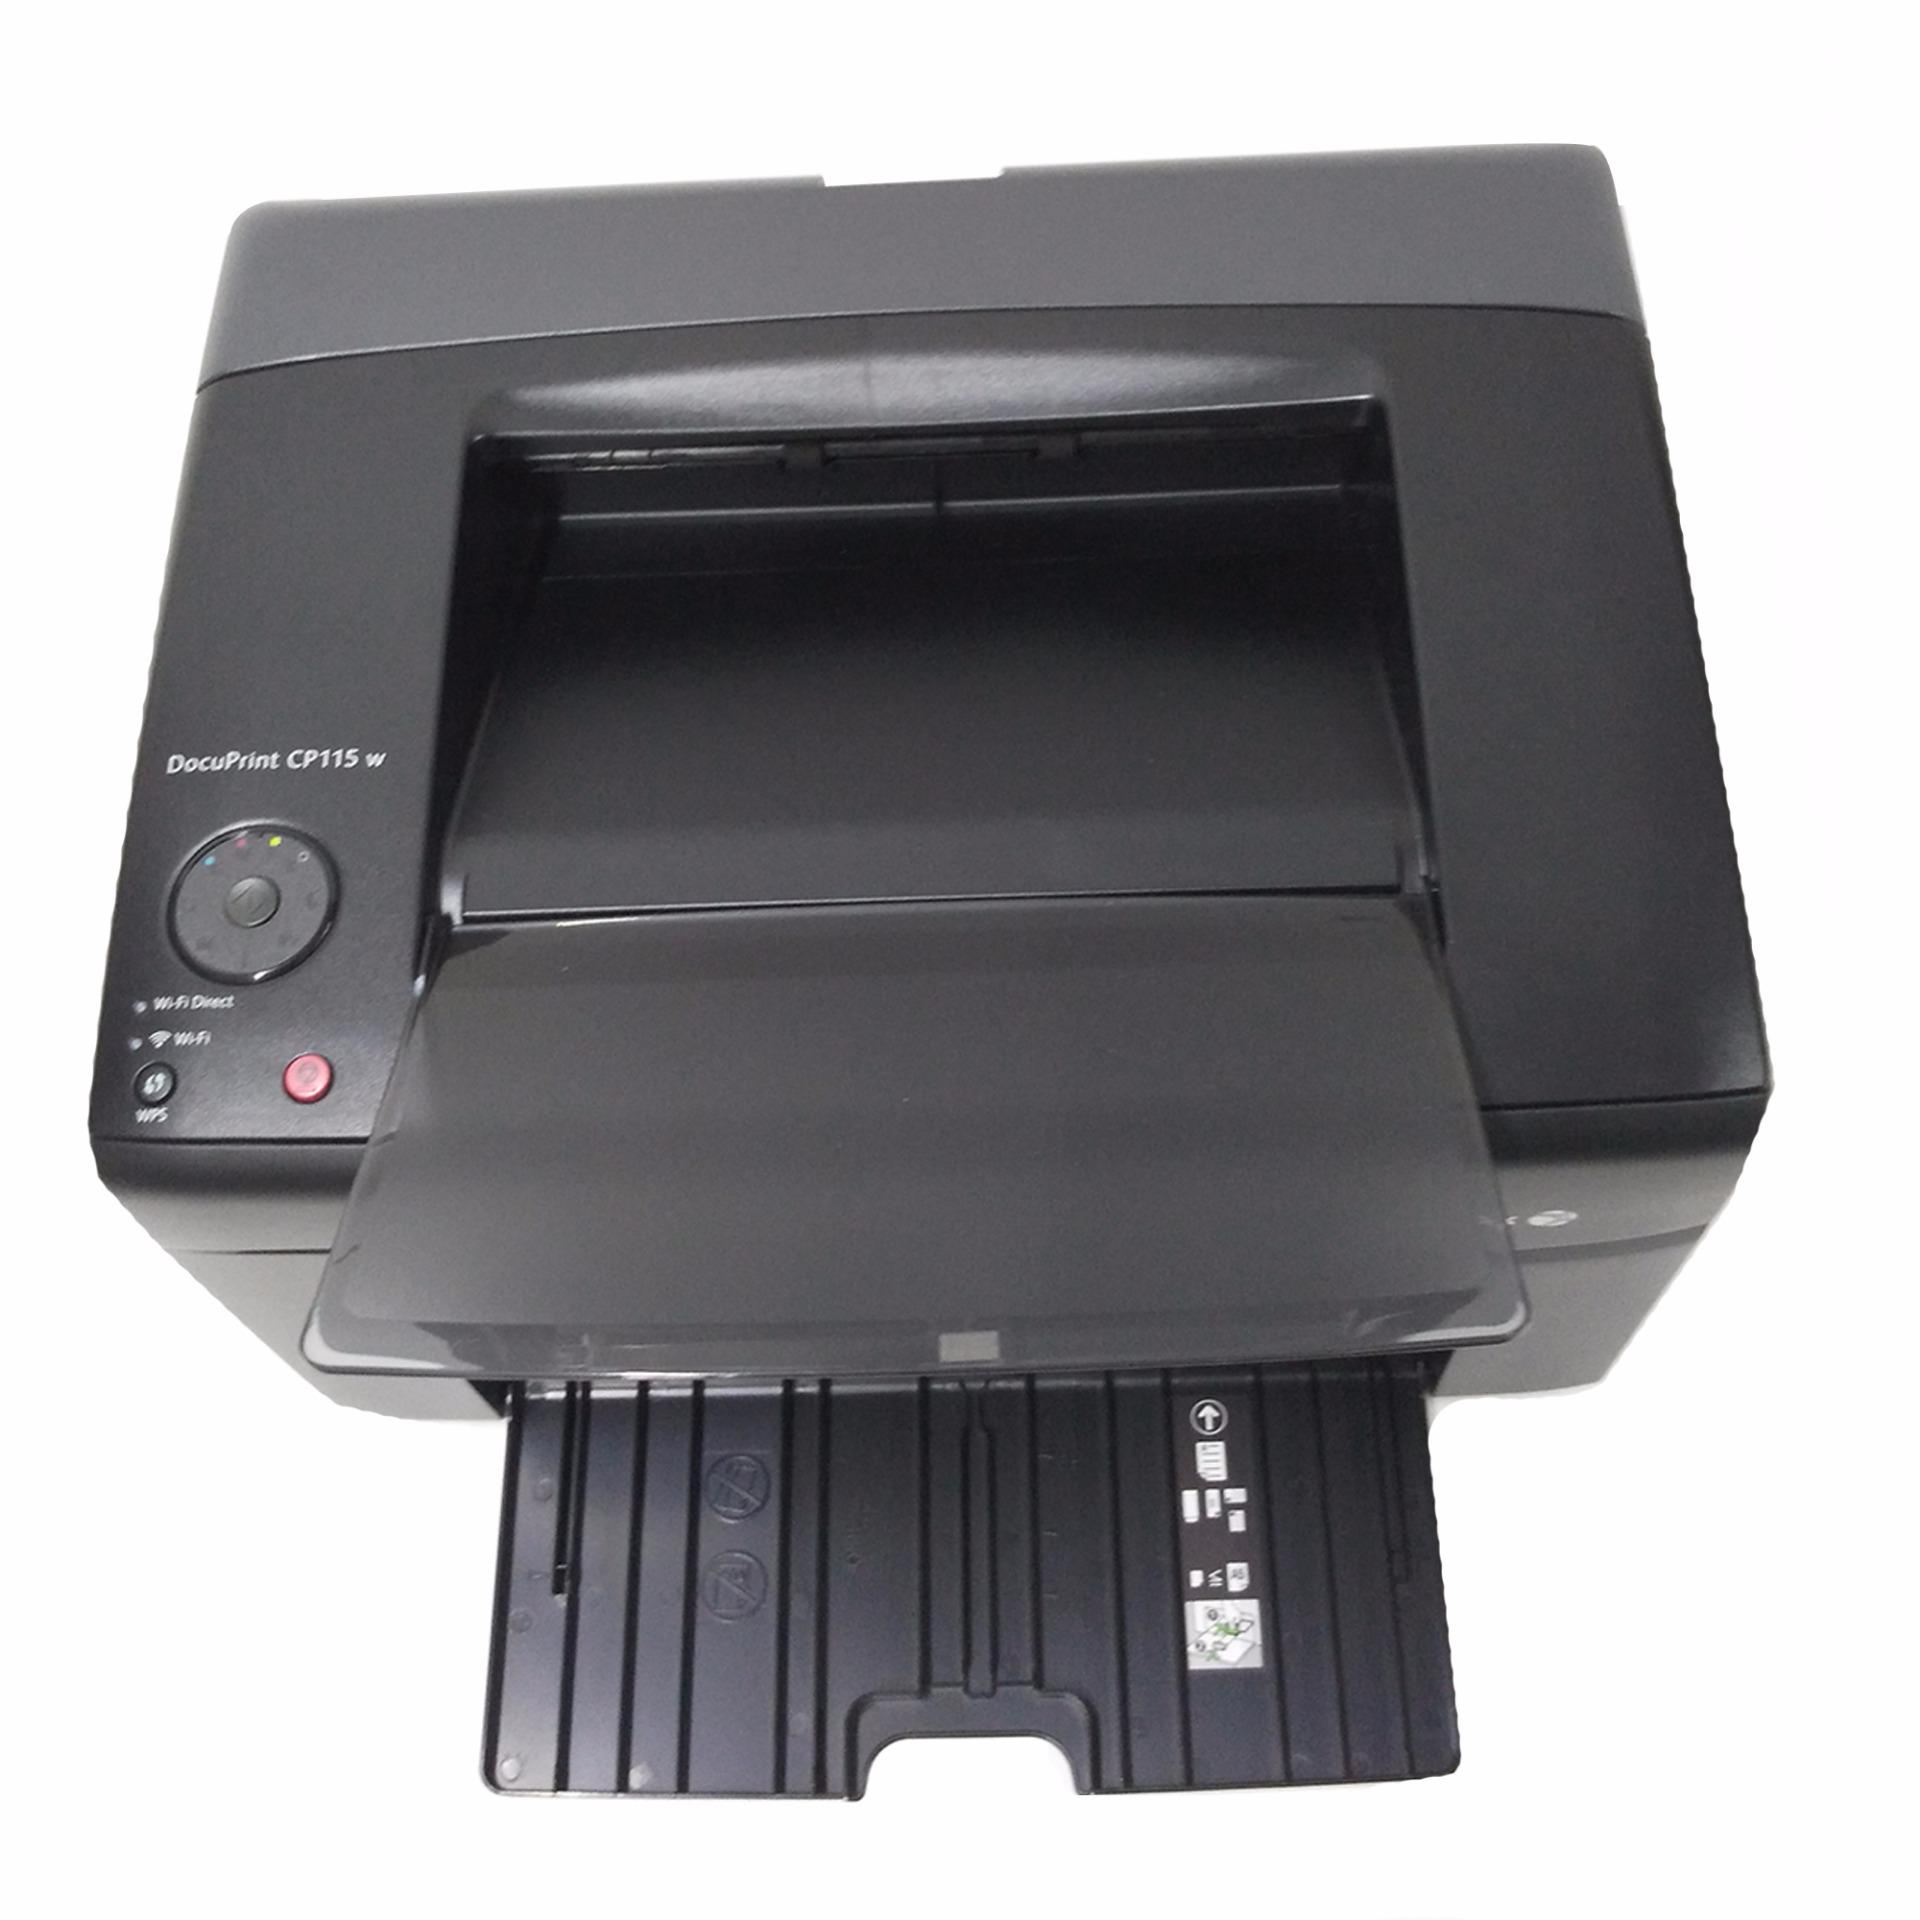 Philippines Fuji Xerox Docuprint Cp115 W Laser Printer Price Me M115w